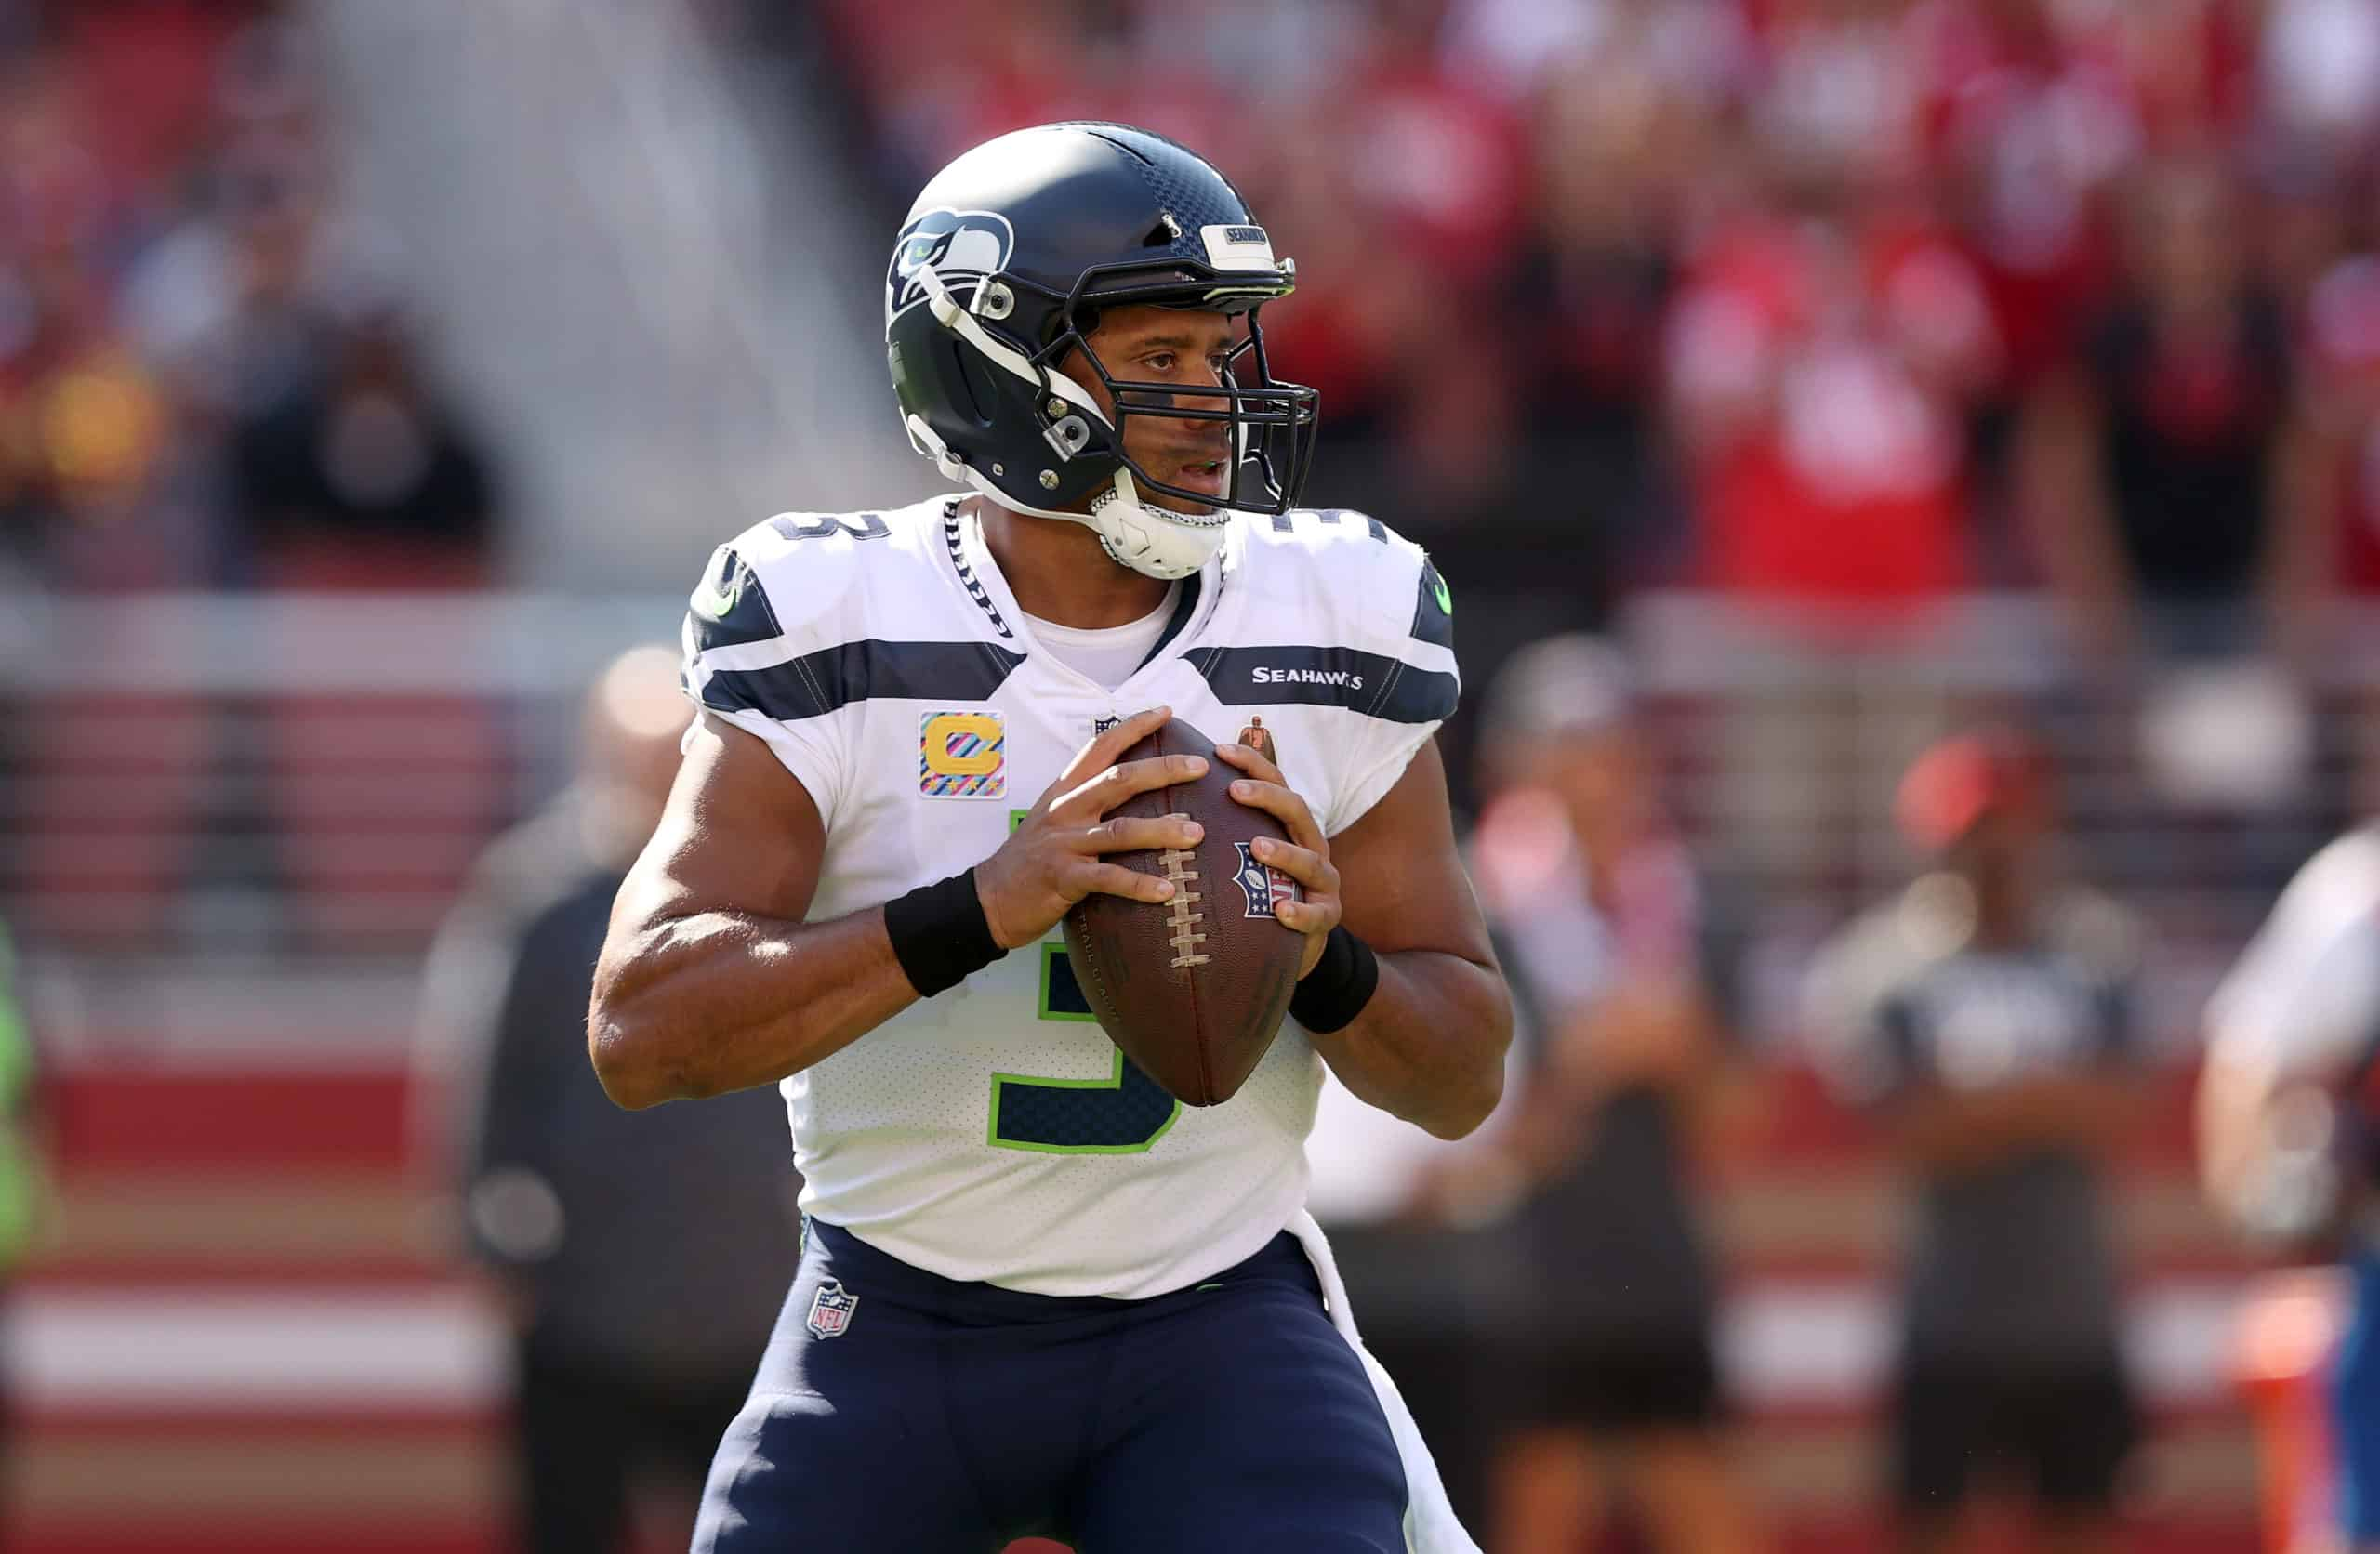 Russell Wilson celebrates becoming the fastest quarterback in the NFL to win 100 games after the Seahawks defeated the 49ers on Sunday.